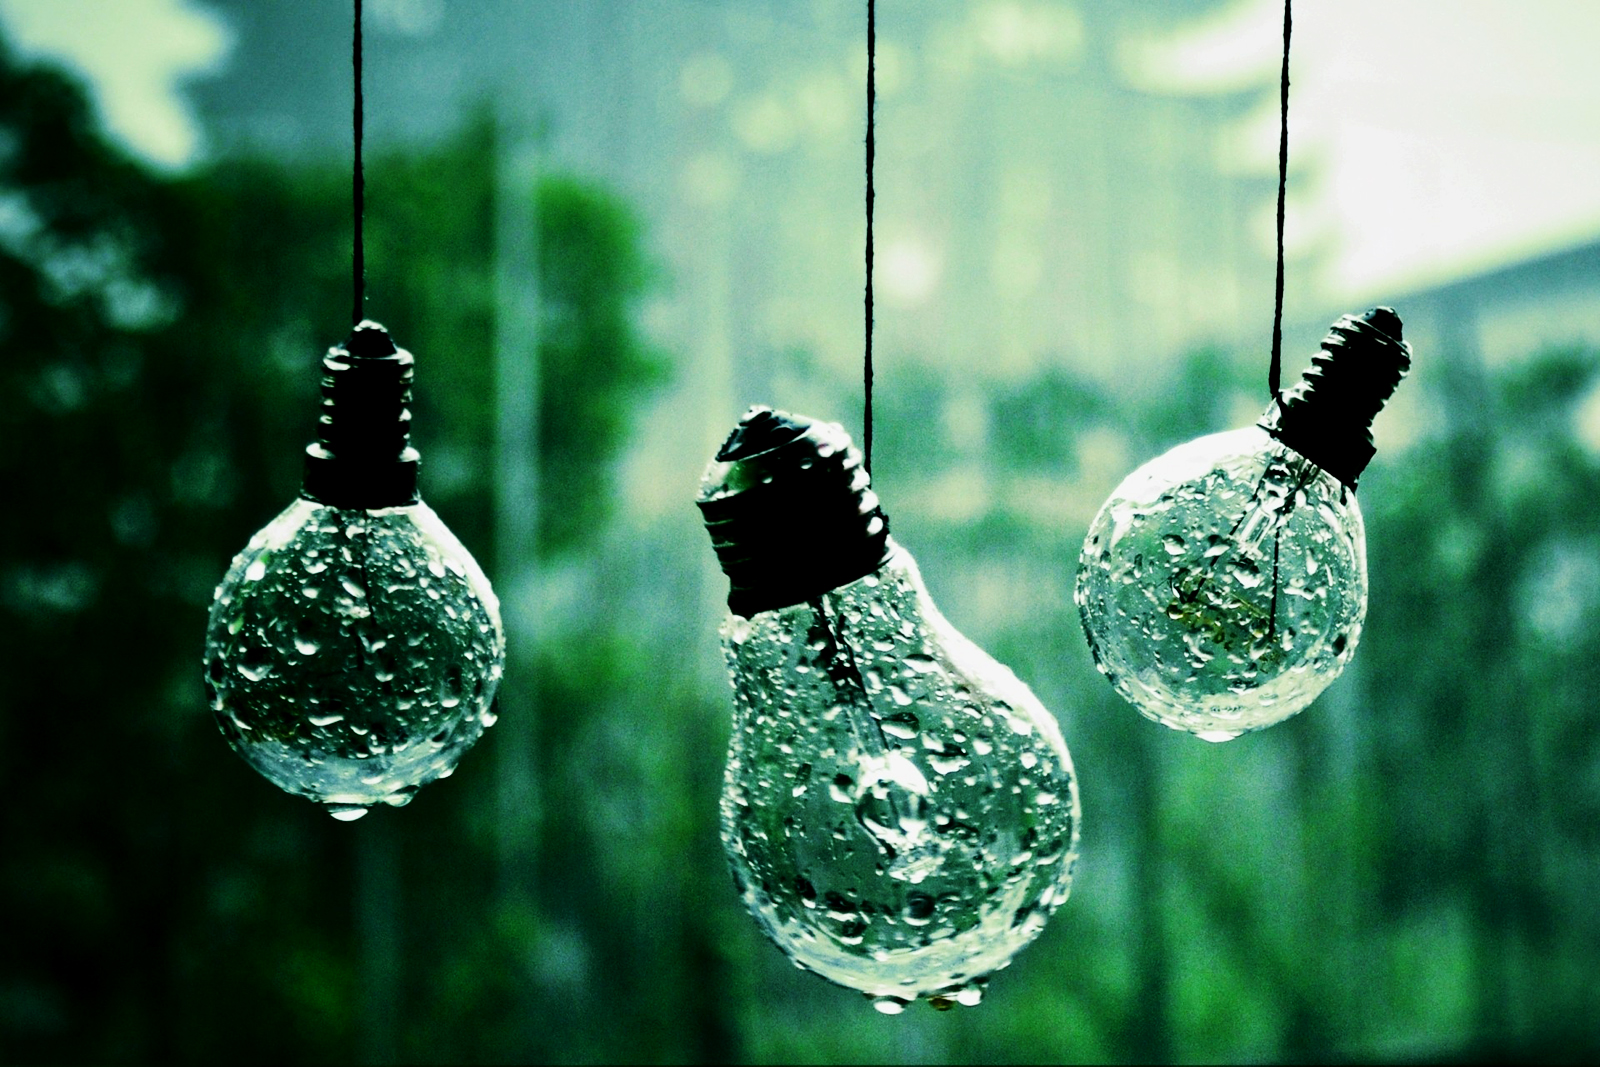 Free Download Light Bulb Hd Wallpapers Stock Photos Hd